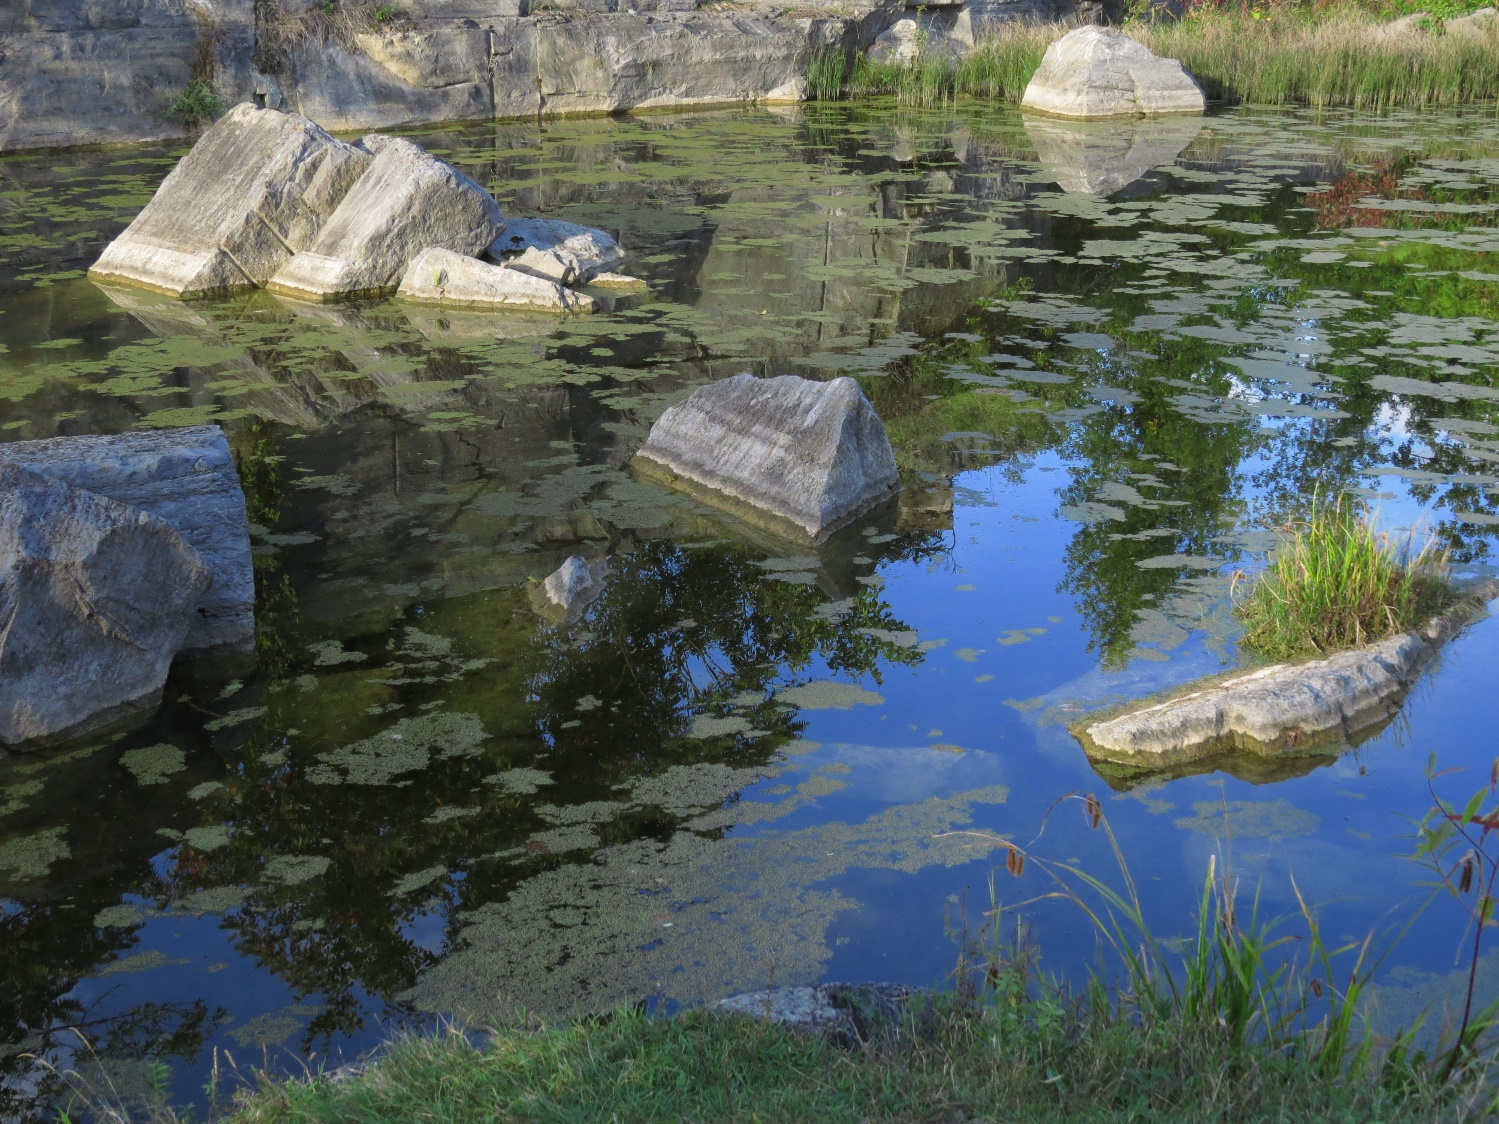 Rock, sky and water in a Fisk Quarry Pond, La Motte